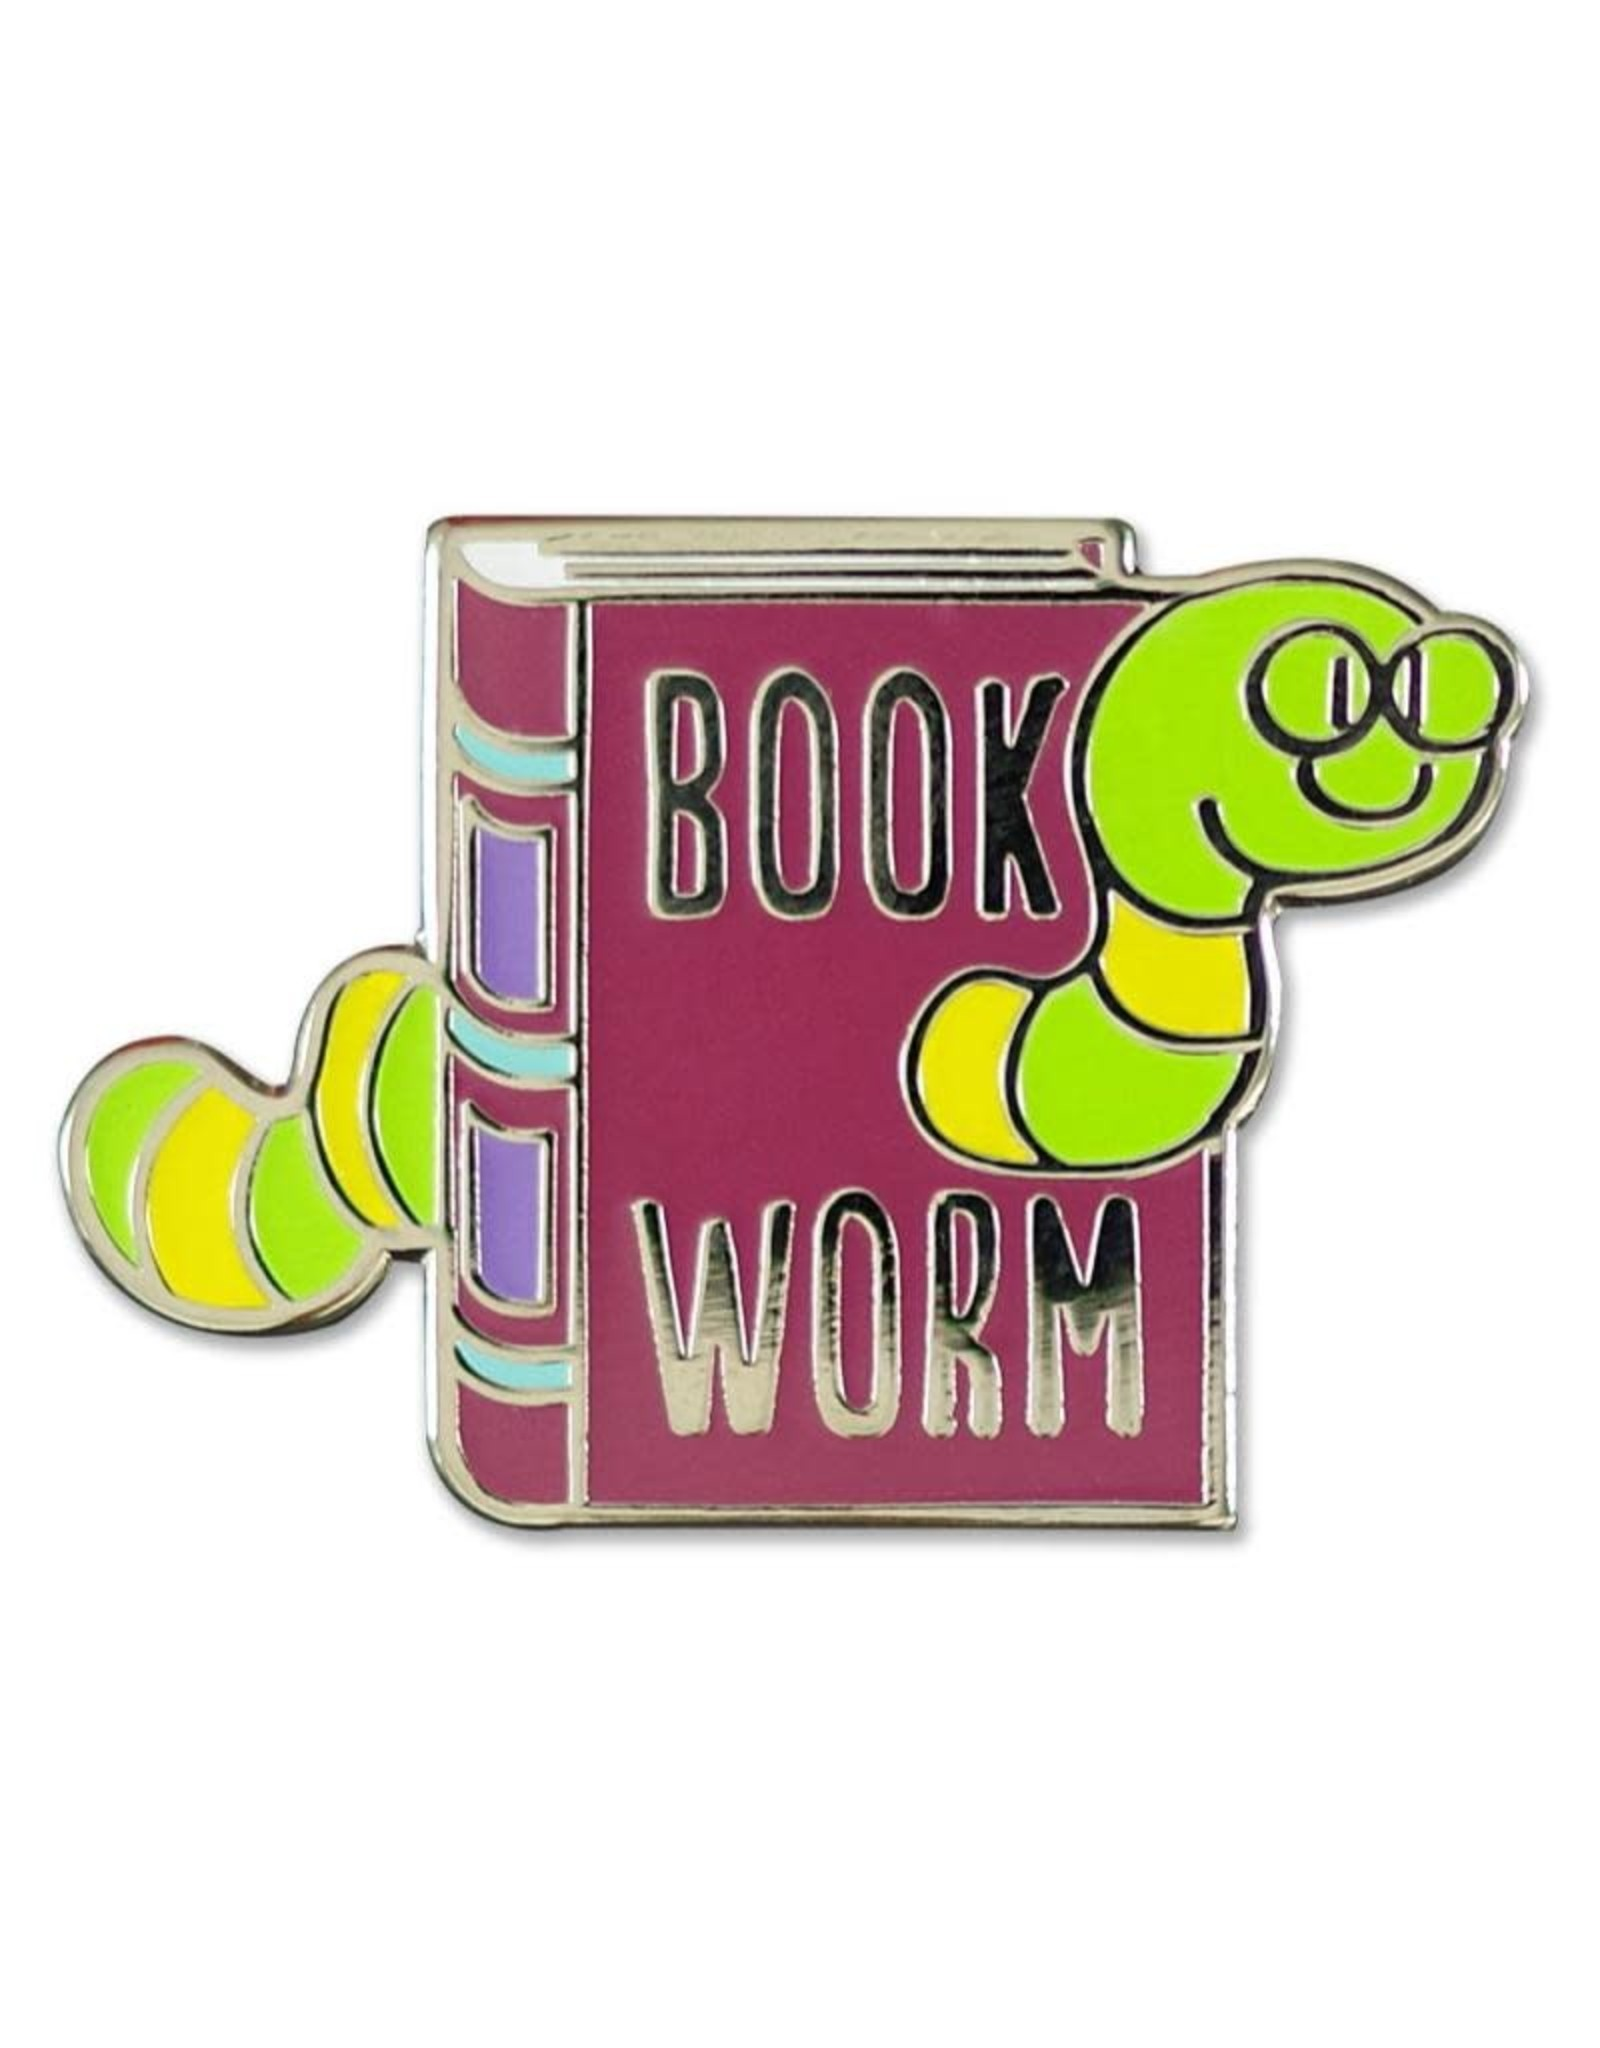 Peter Pauper Bookworm Enamel Pin